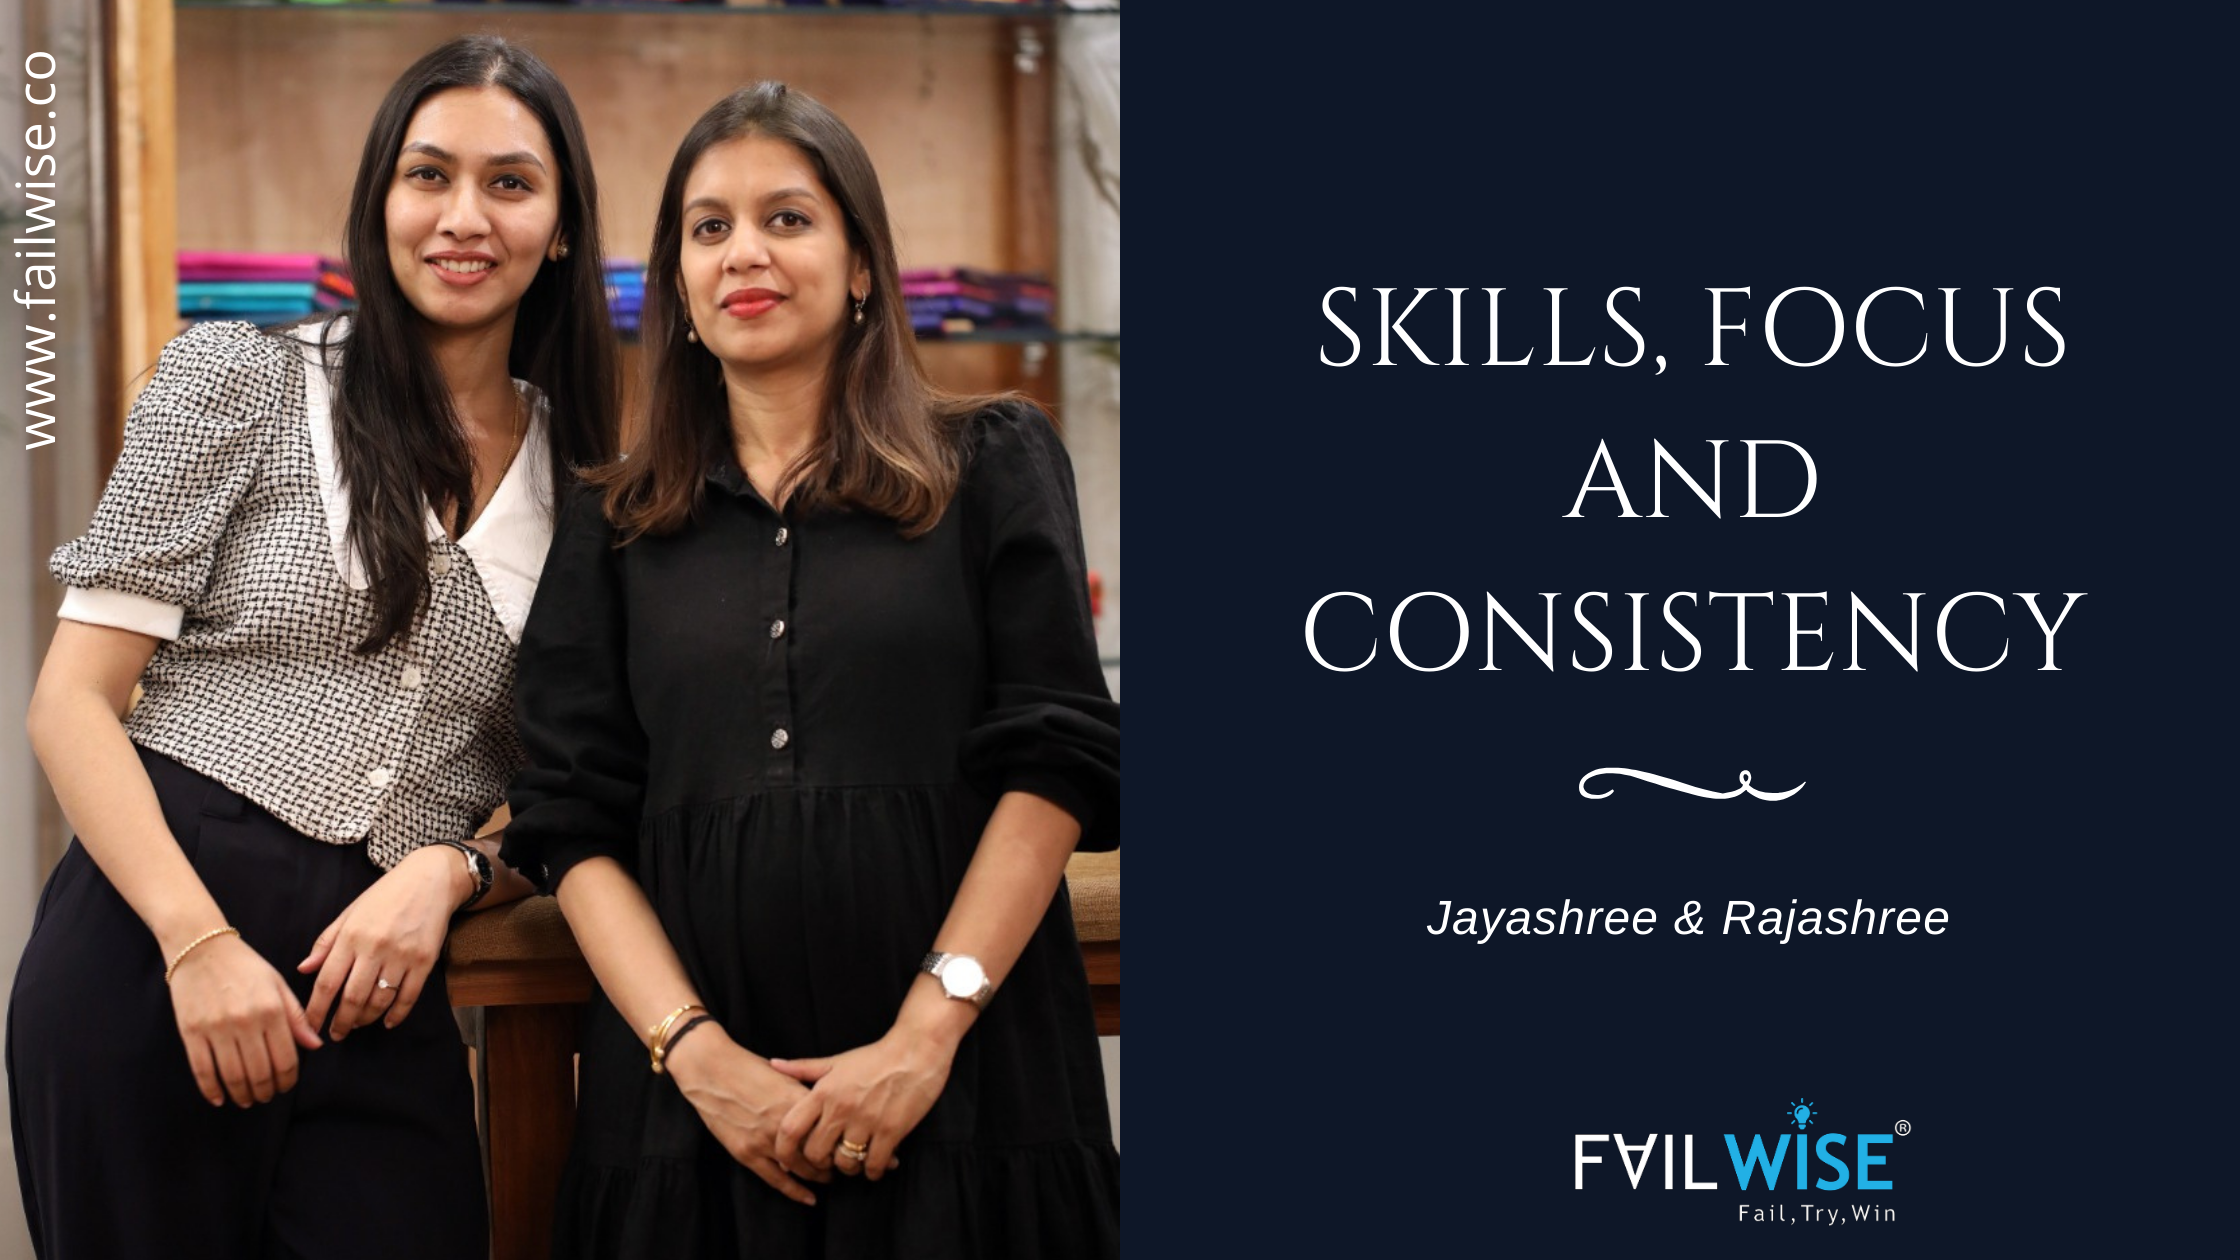 """Focus & consistency are the key"" Jayashree & Rajashree, Founders of Colorsootra"